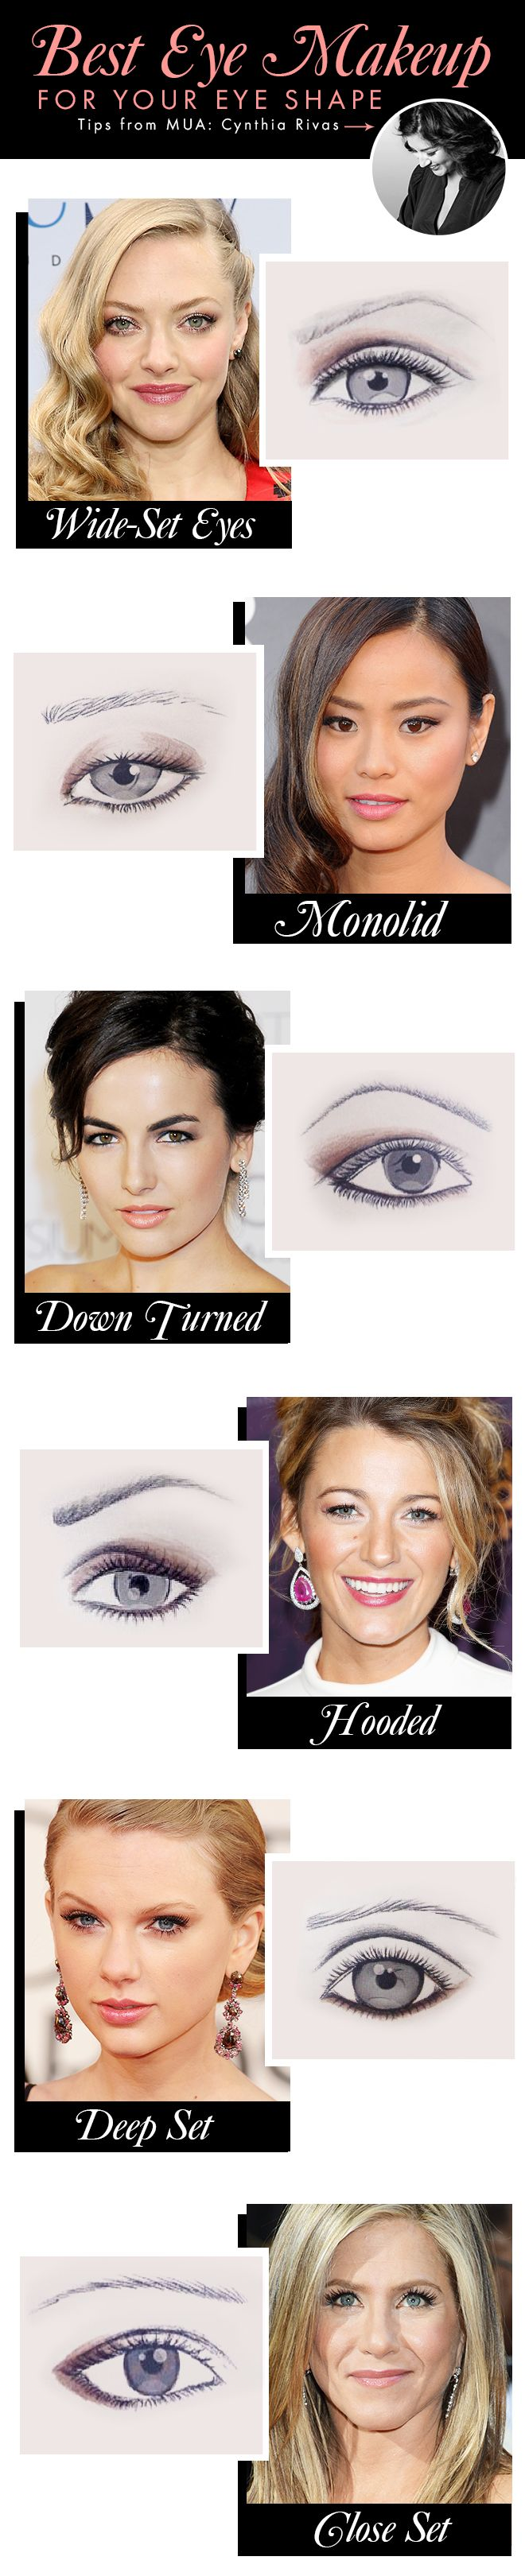 Knowing your eye shape is important to know. This way you can do the makeup that best suits your natural shape.